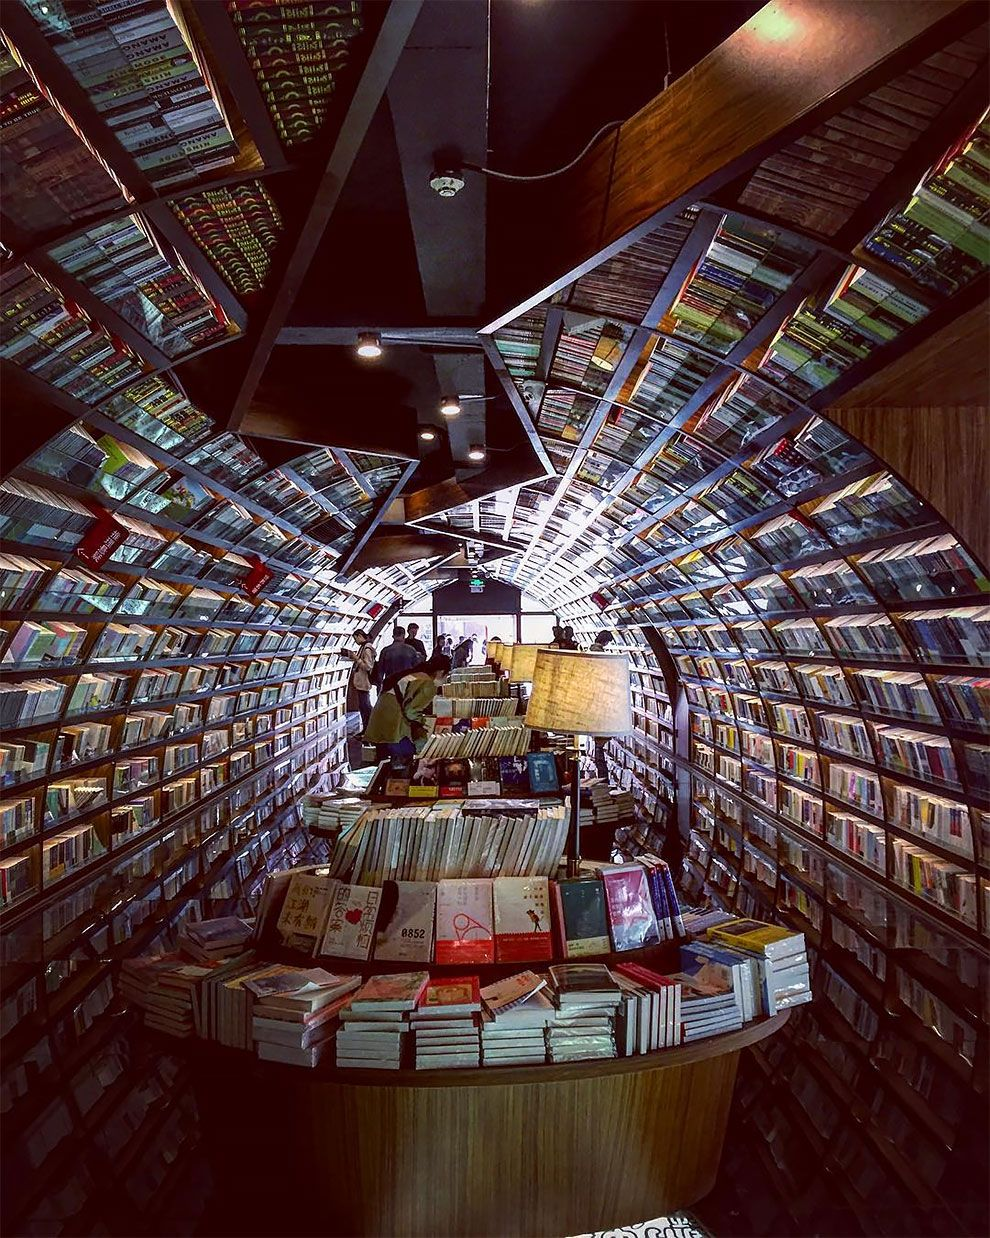 This Infinity Book Store Looks Like An Endless Tunnel Of Books